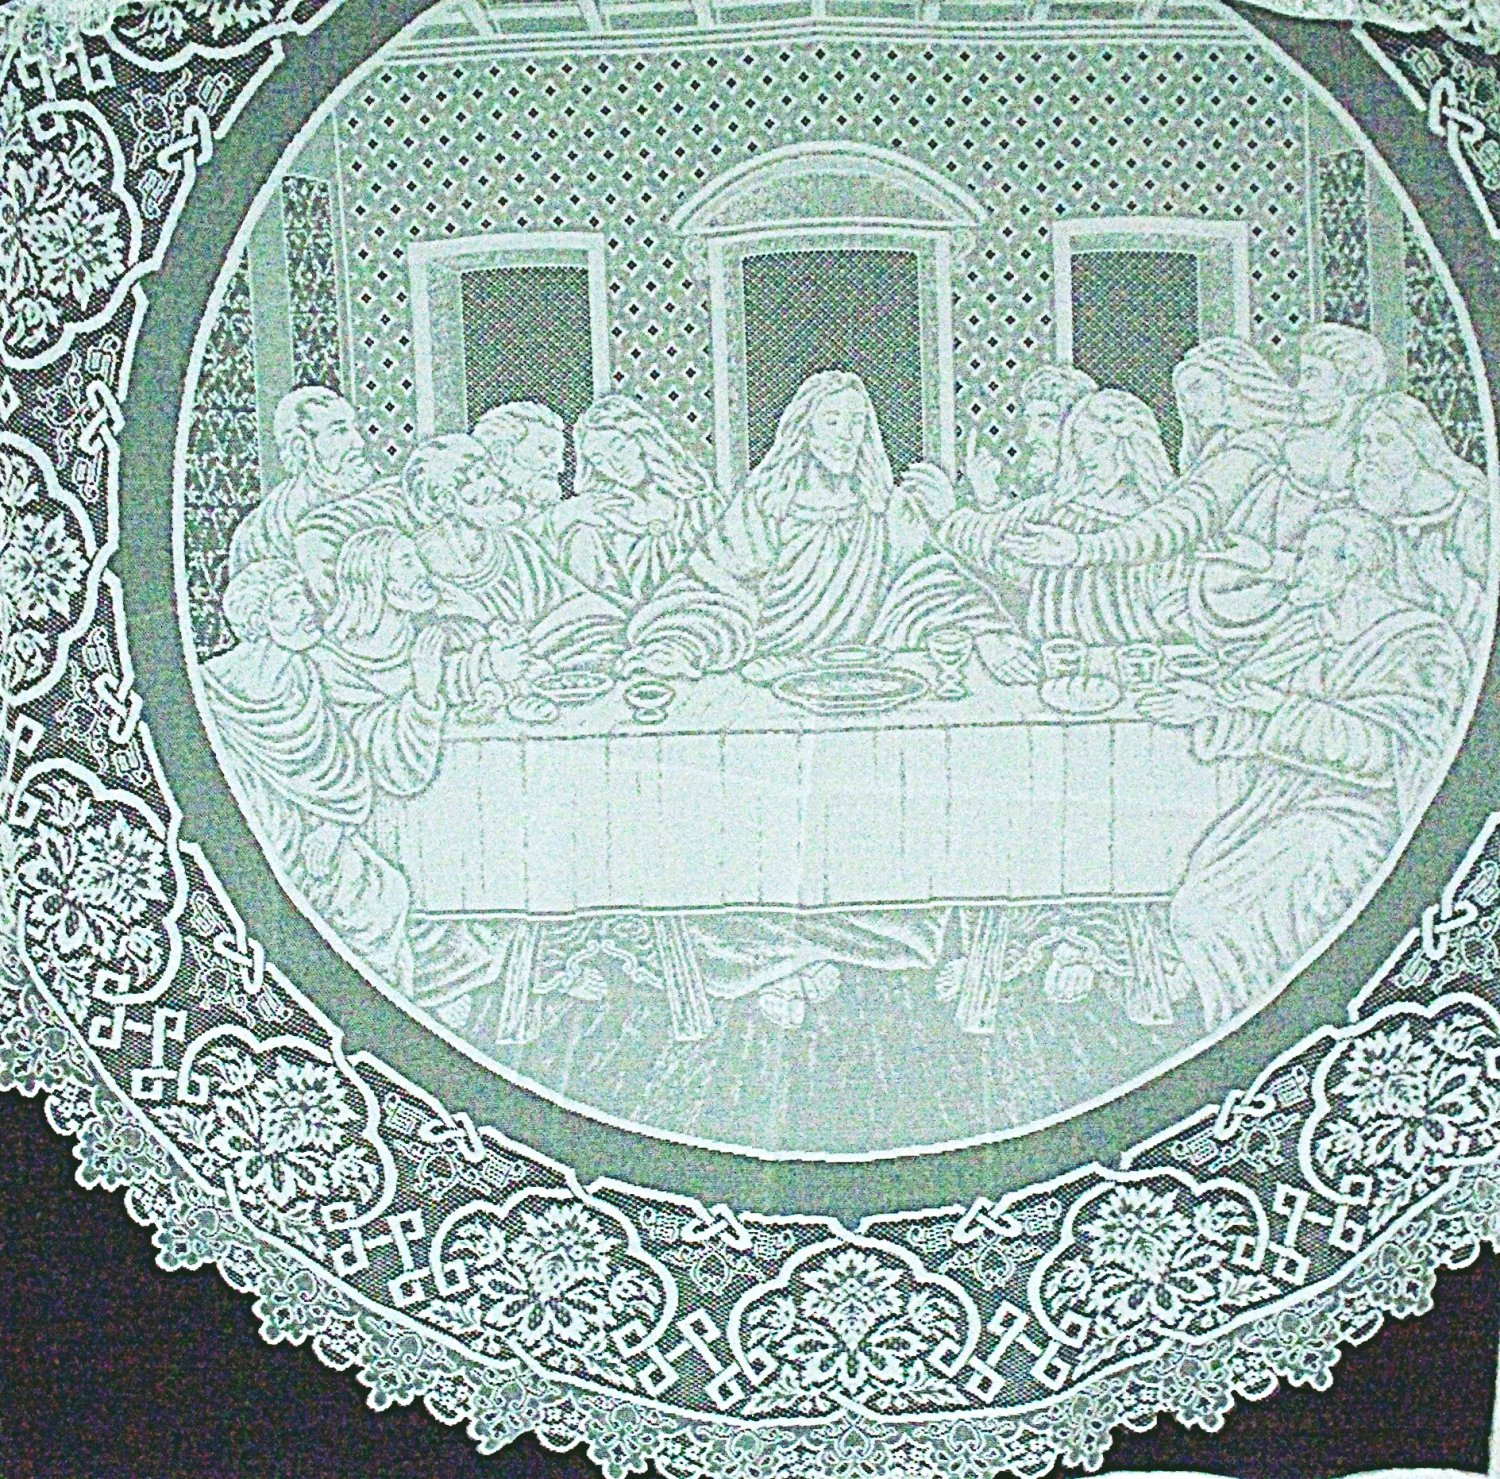 Round Tablecloth Last Supper White 72 Inches Round Tablecloth Oxford House